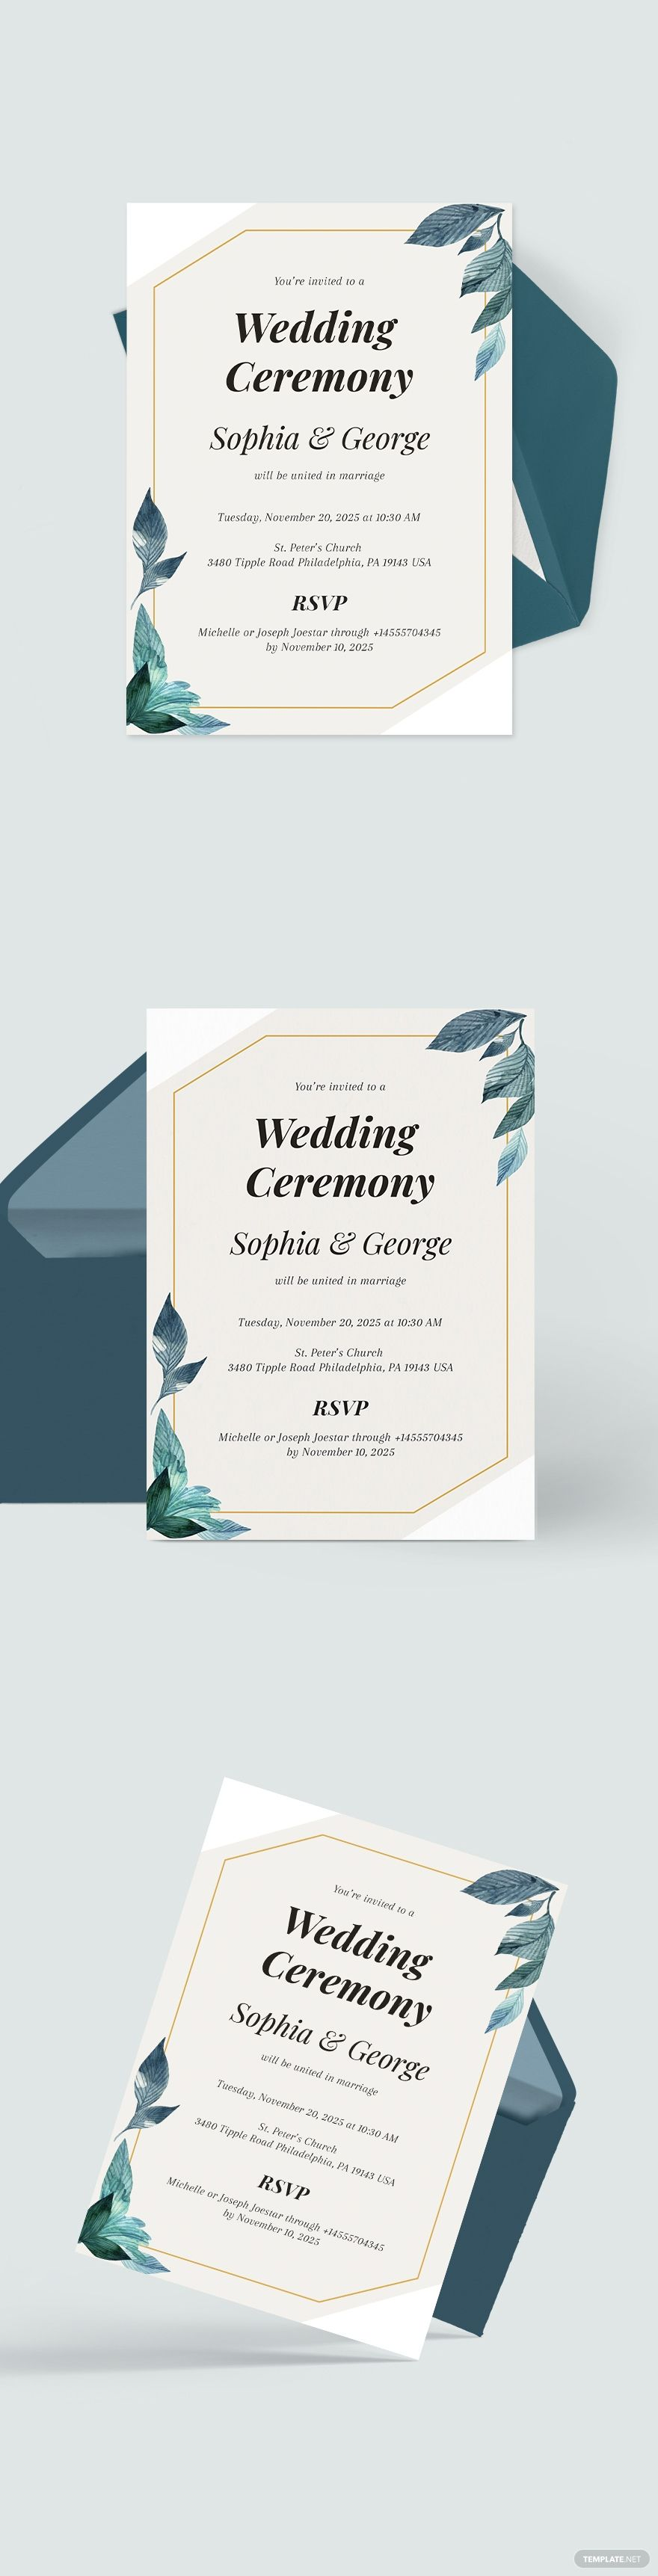 Formal Wedding Invitation Template in 2020 Wedding